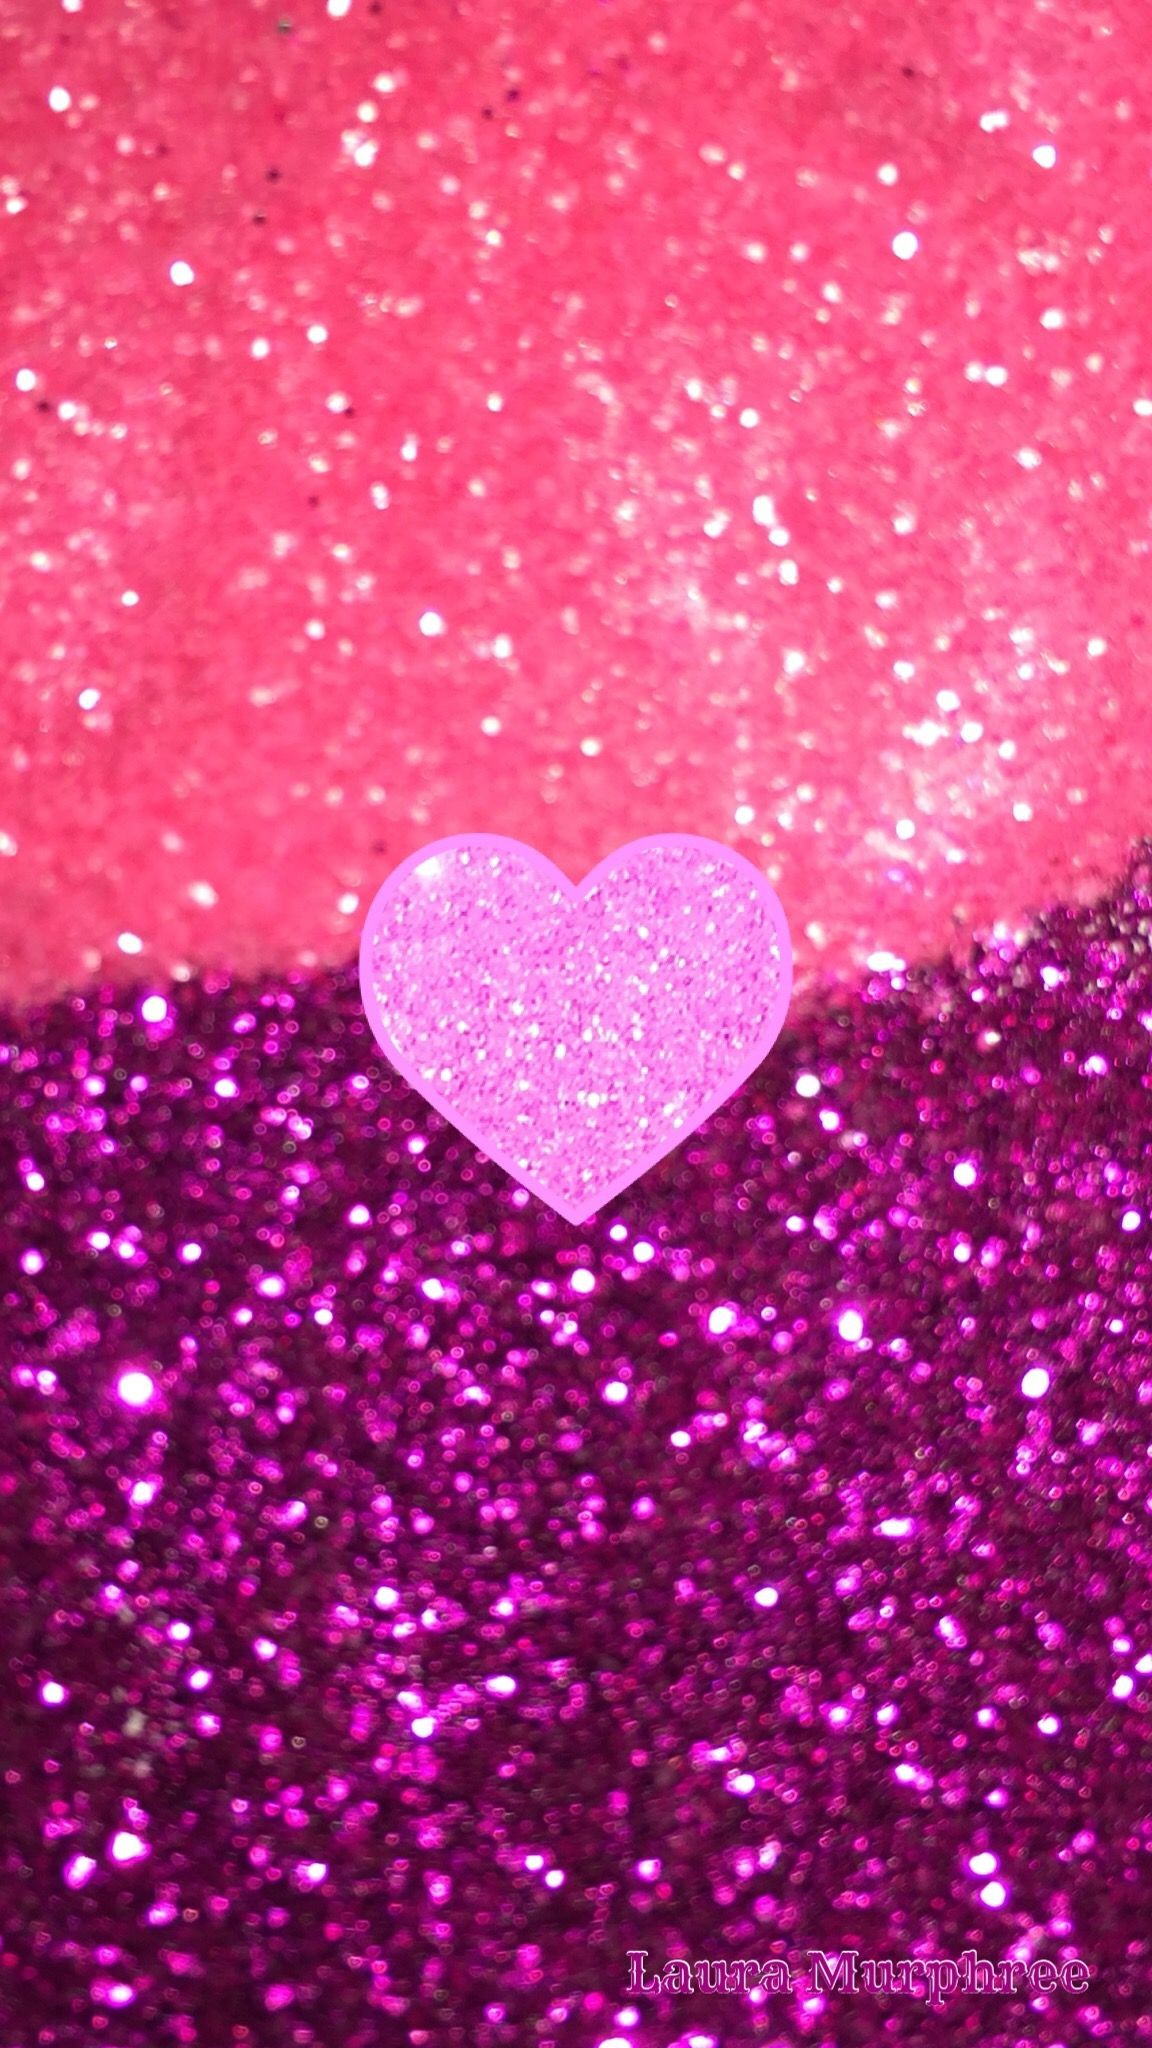 Res: 1152x2048, Glitter phone wallpaper sparkle background sparkling bling shimmer sparkles  glitter glittery colorful heart